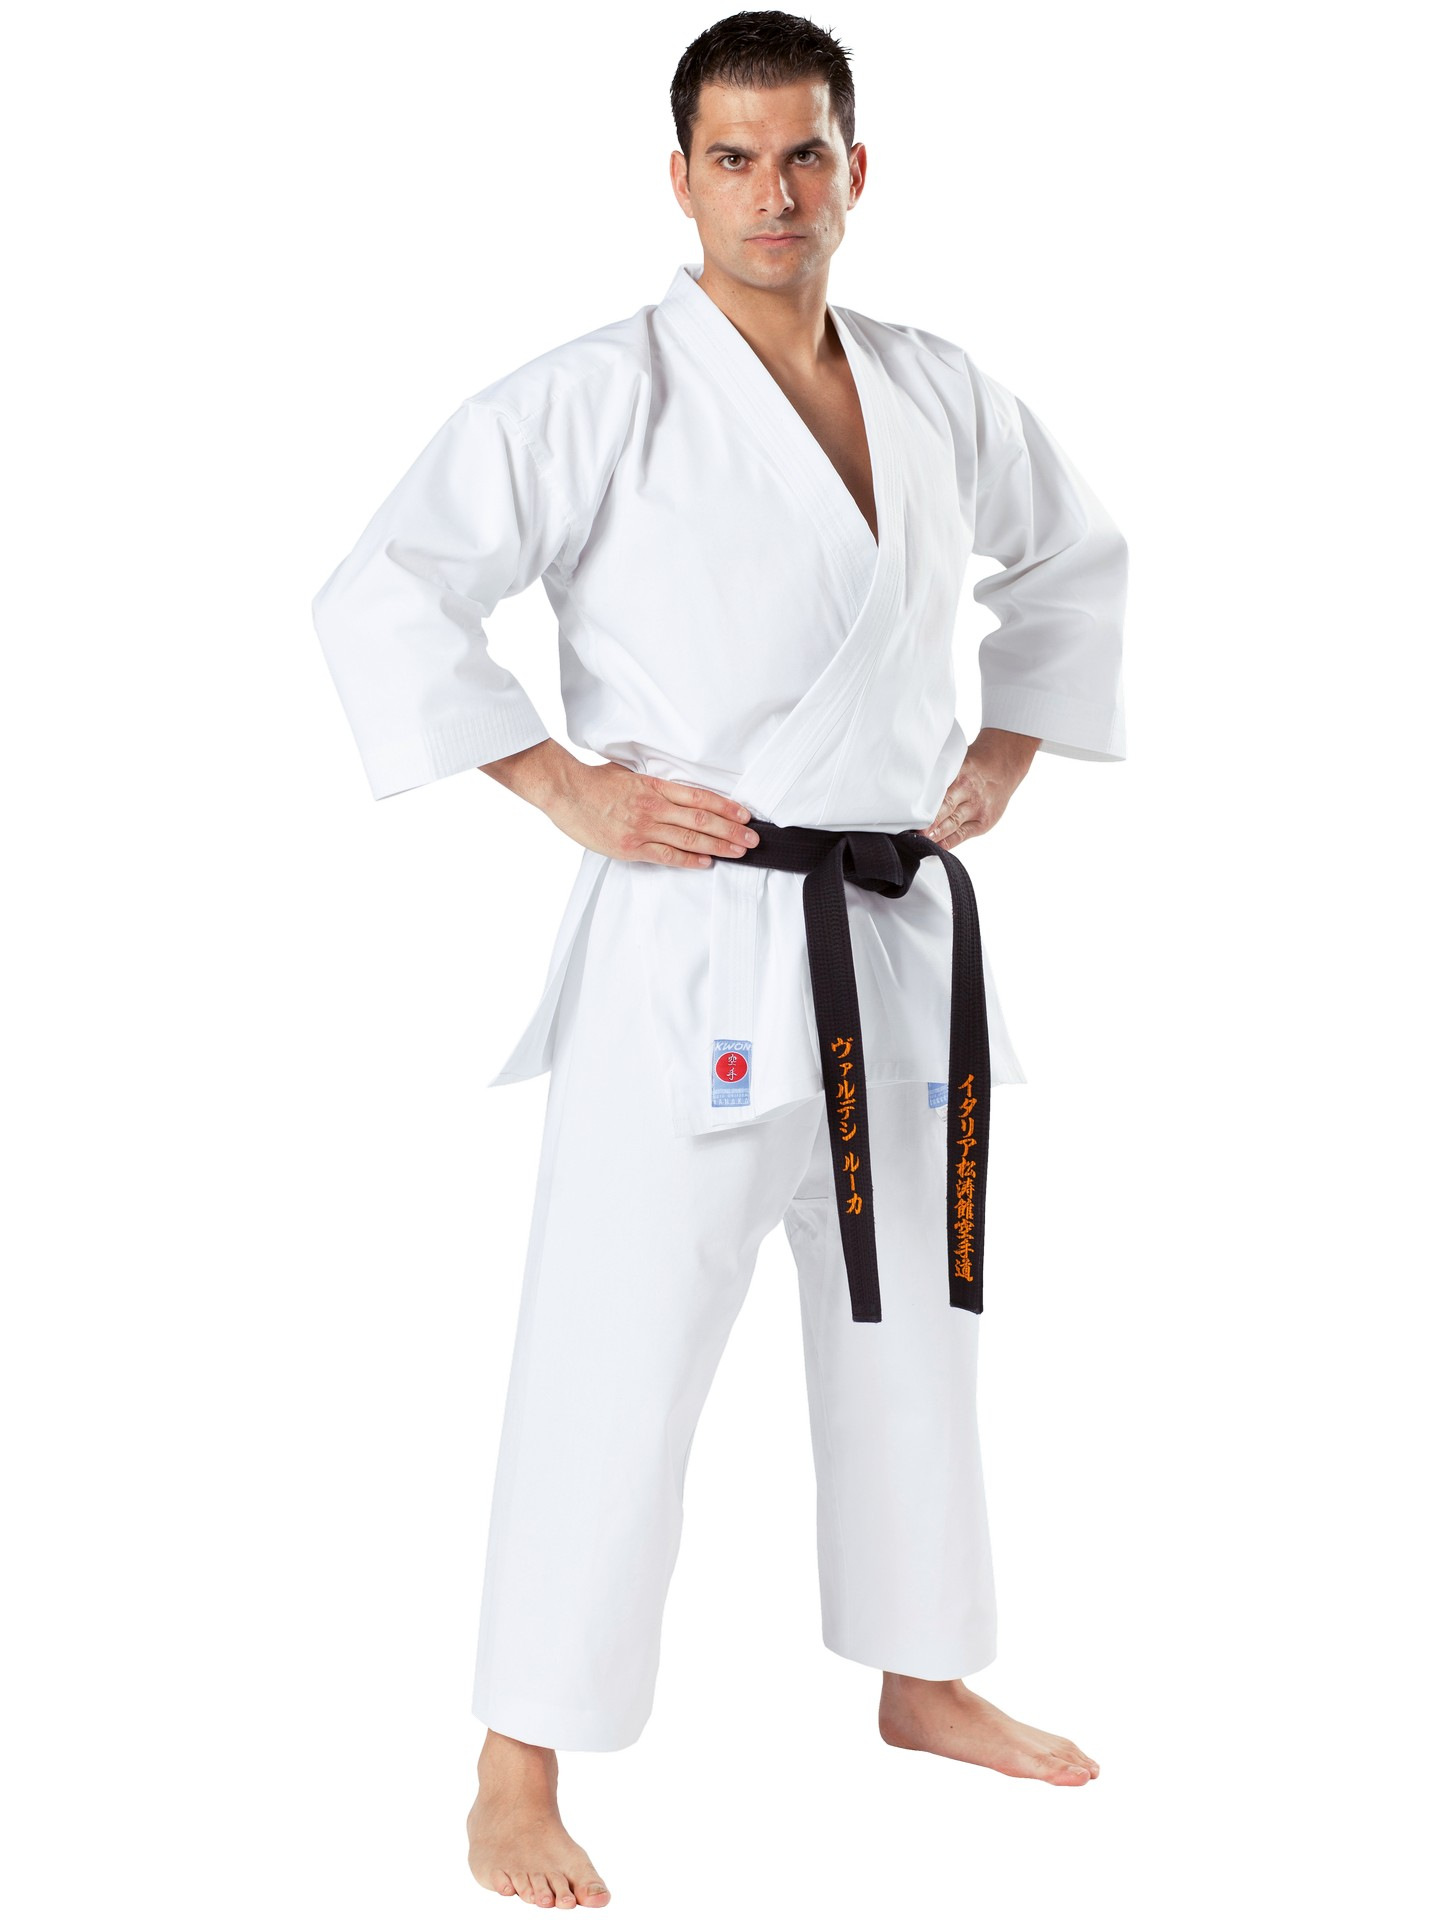 57c406ae9 Karate Uniform Tanaka Kata 10 oz